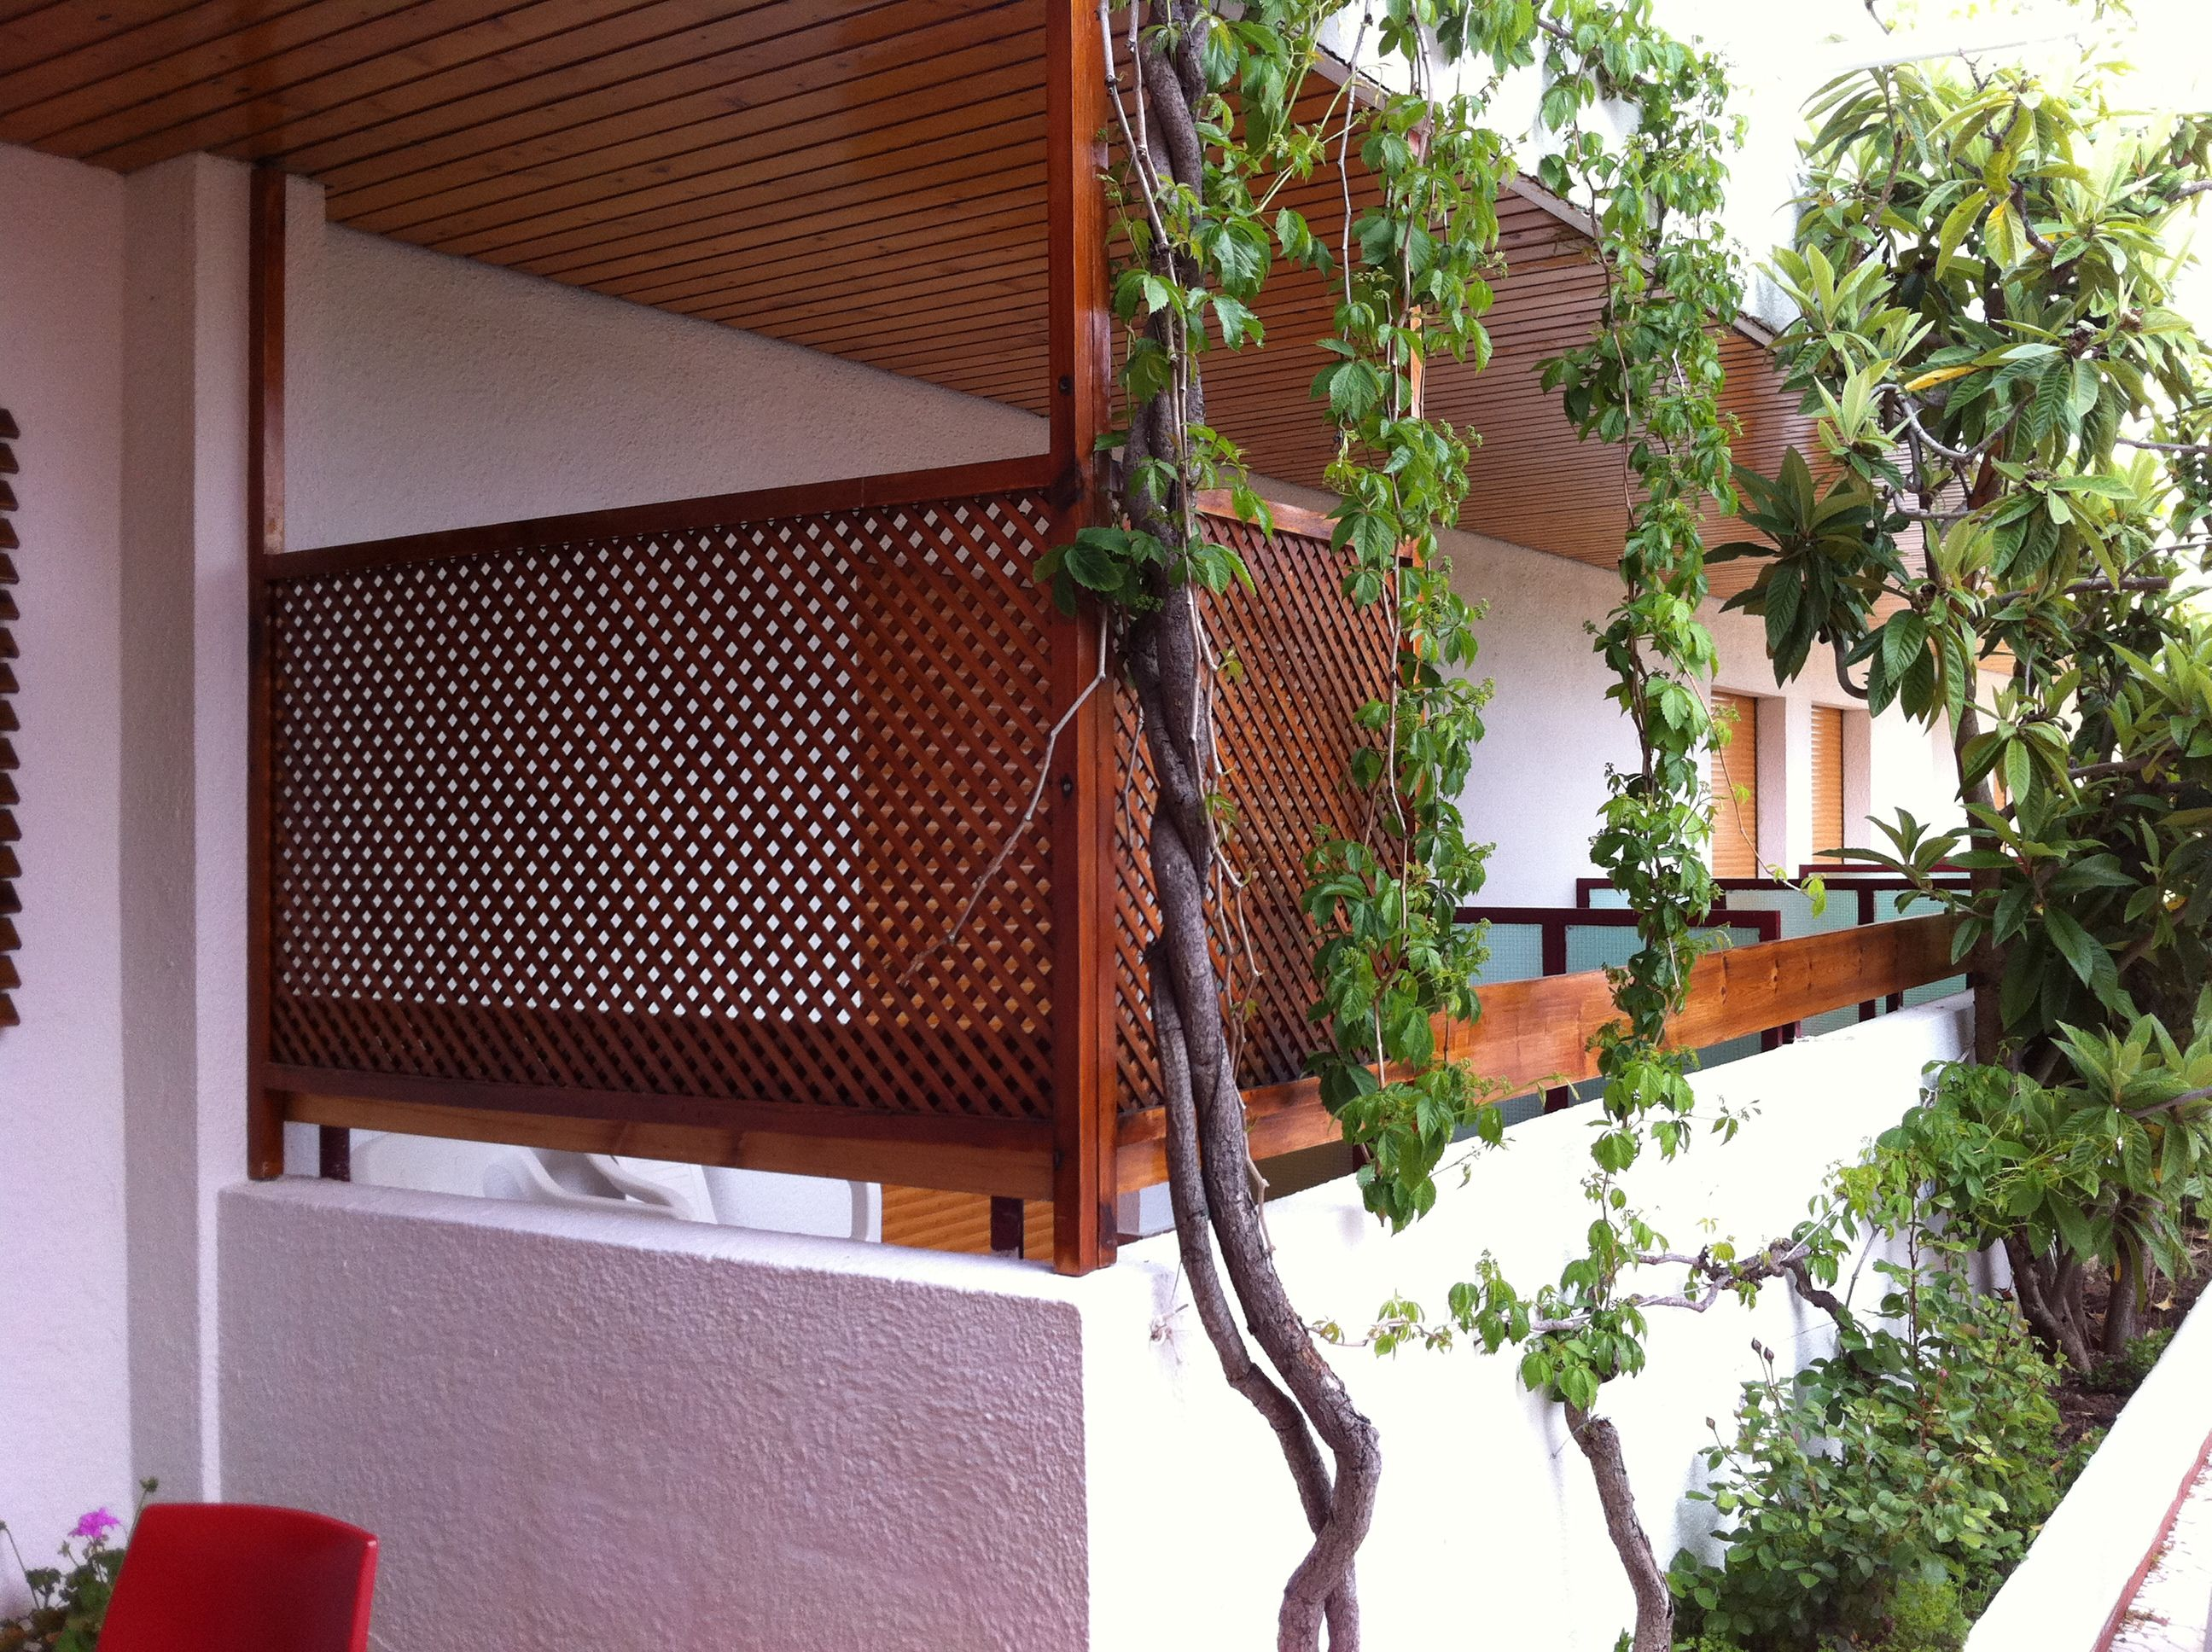 Balcony with wooden lattice